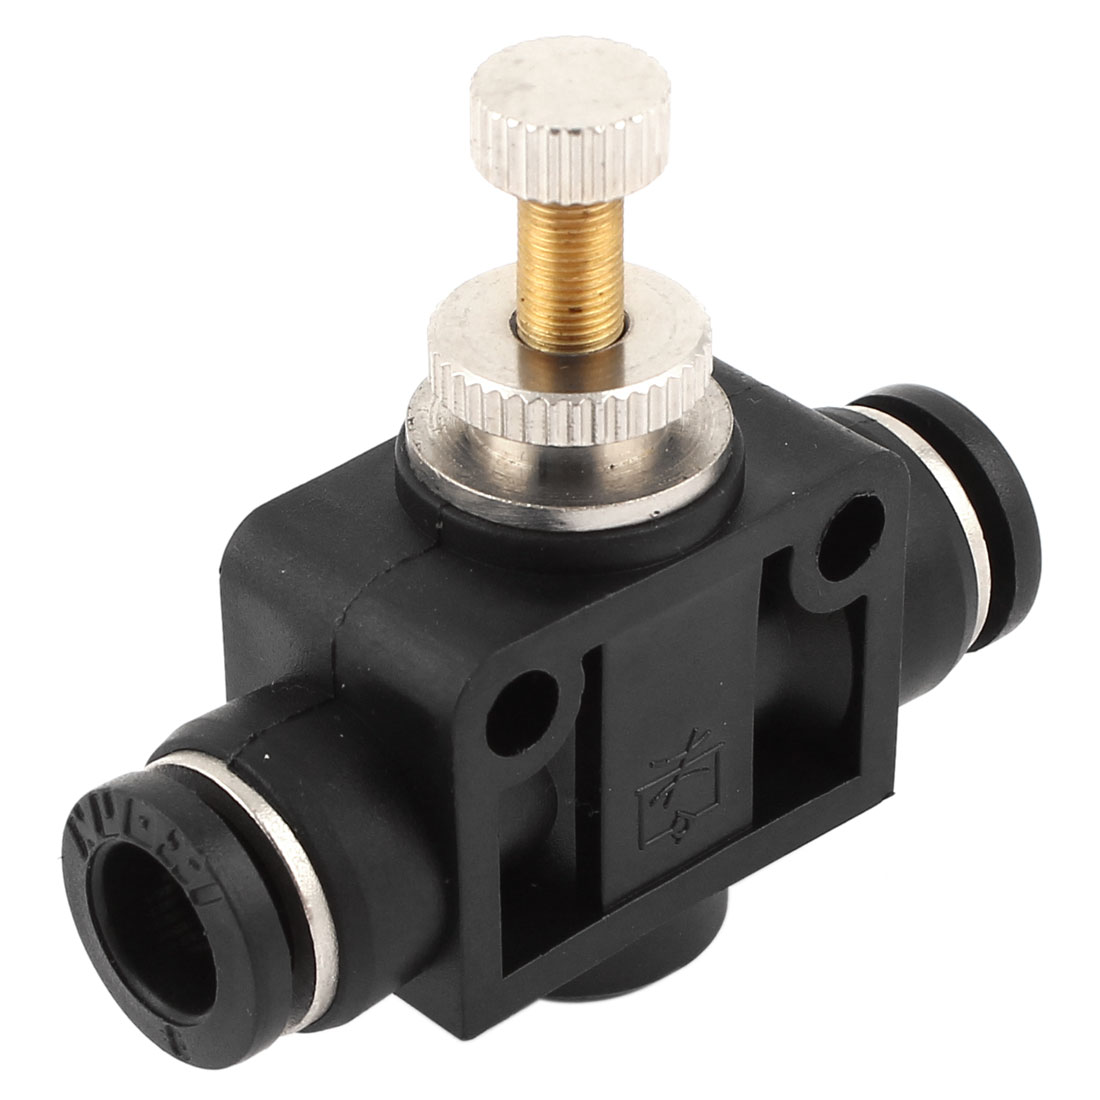 8mm to 8mm Push in Tube T-shaped Quick Connector Air Pneumatic Fitting Speed Controller